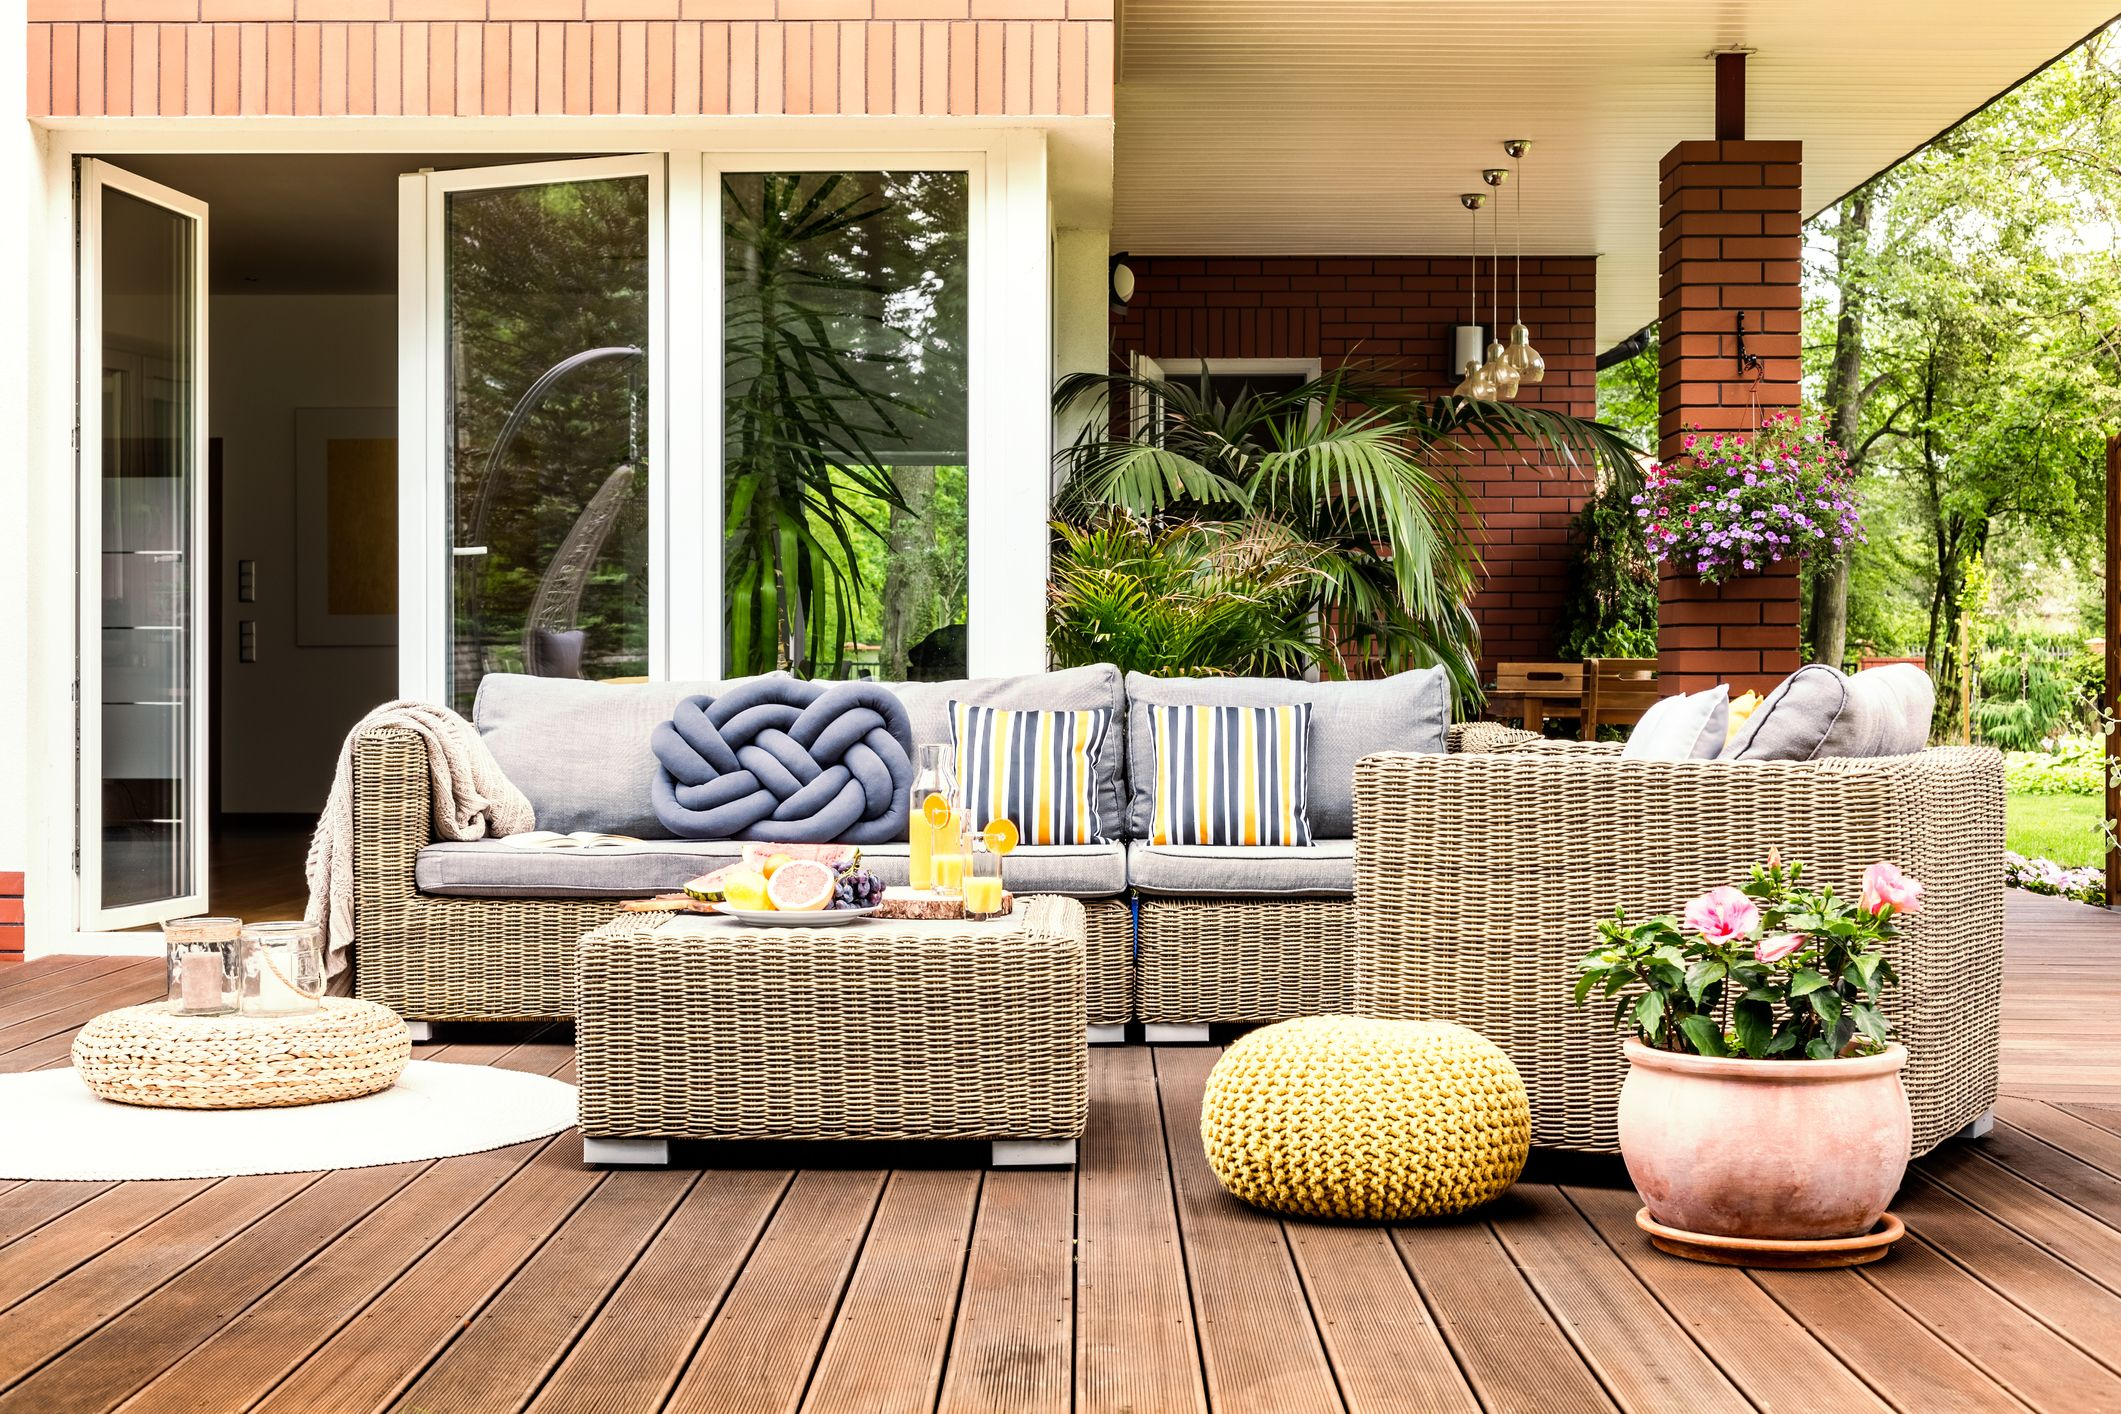 Best Outdoor Furniture 2019 - Where to Buy Outdoor Patio ... on My Garden Outdoor Living id=88650